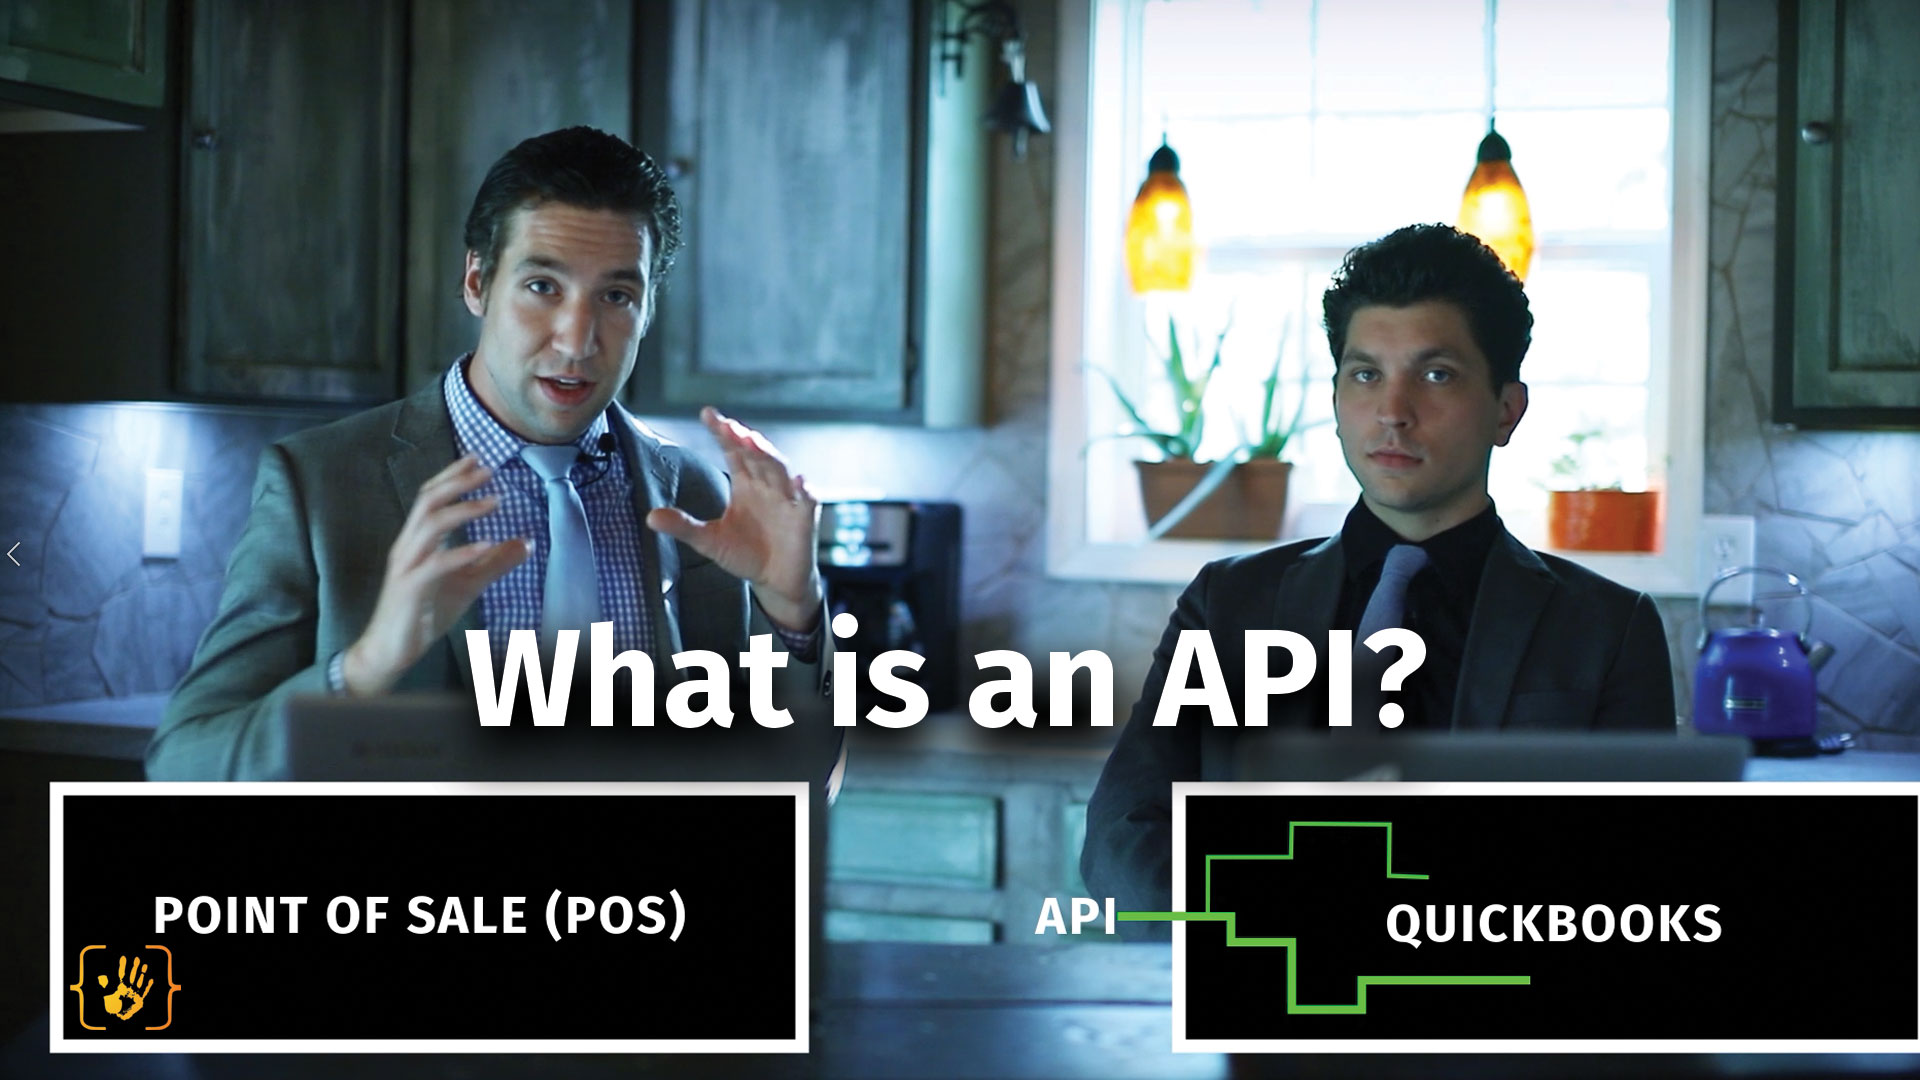 Watch What is an API? (And why is it needed?) on Youtube